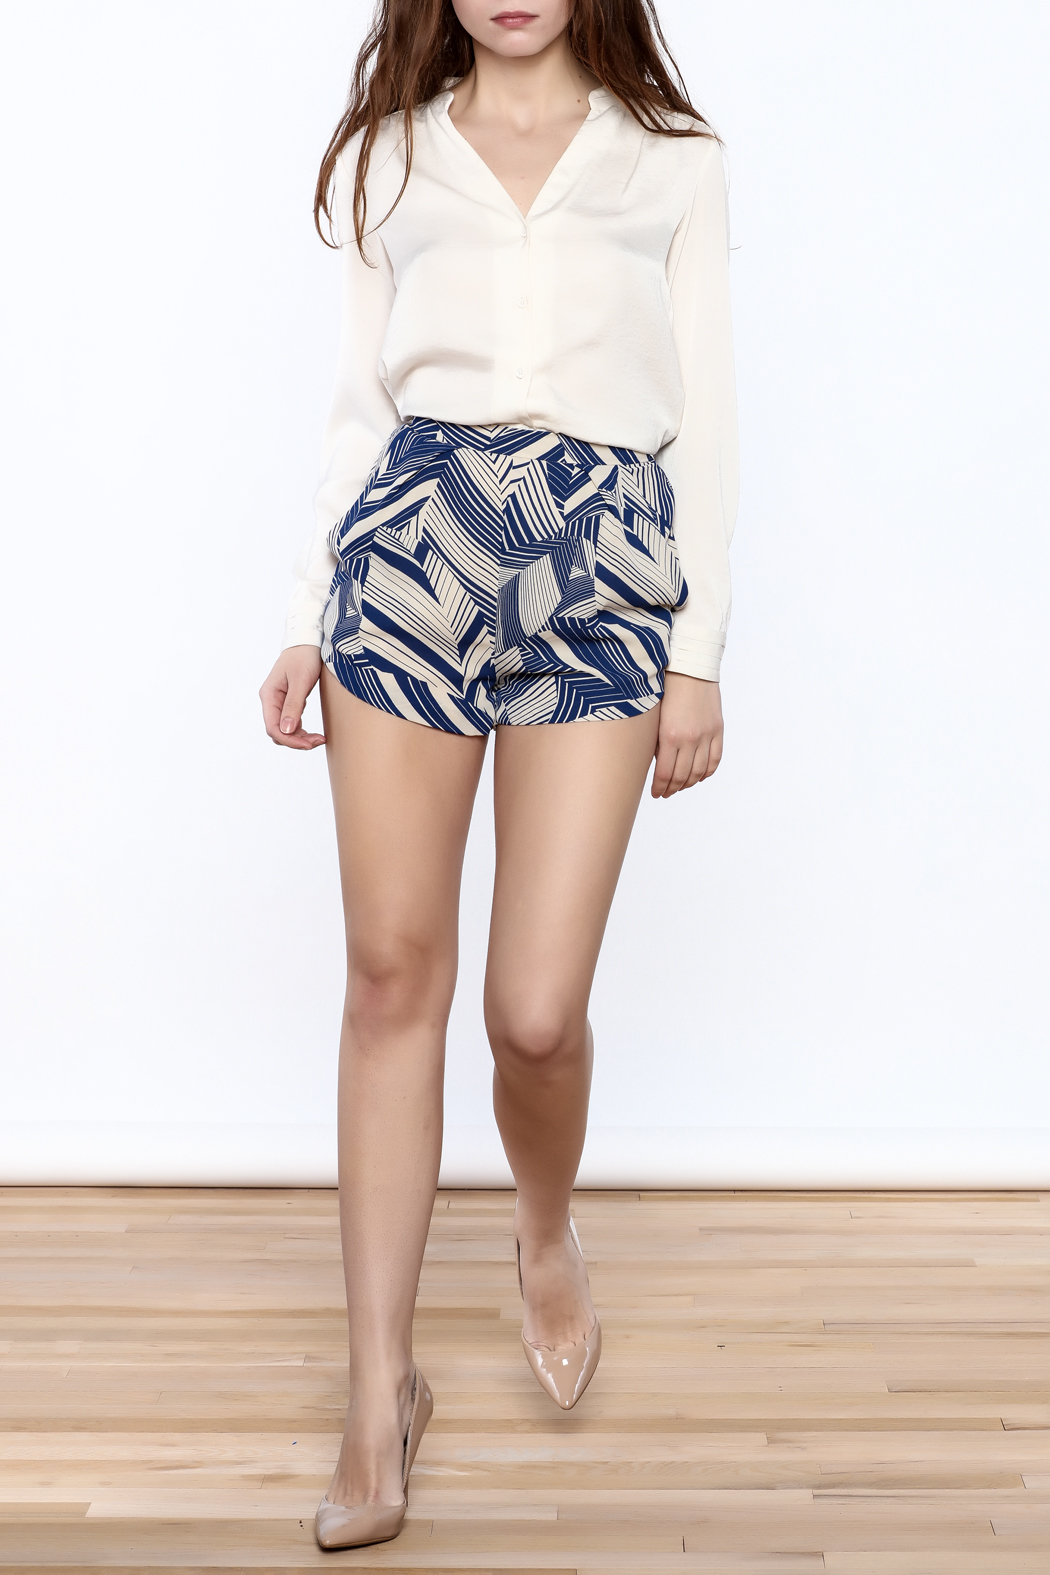 olivacious Graphic Print Shorts - Front Full Image